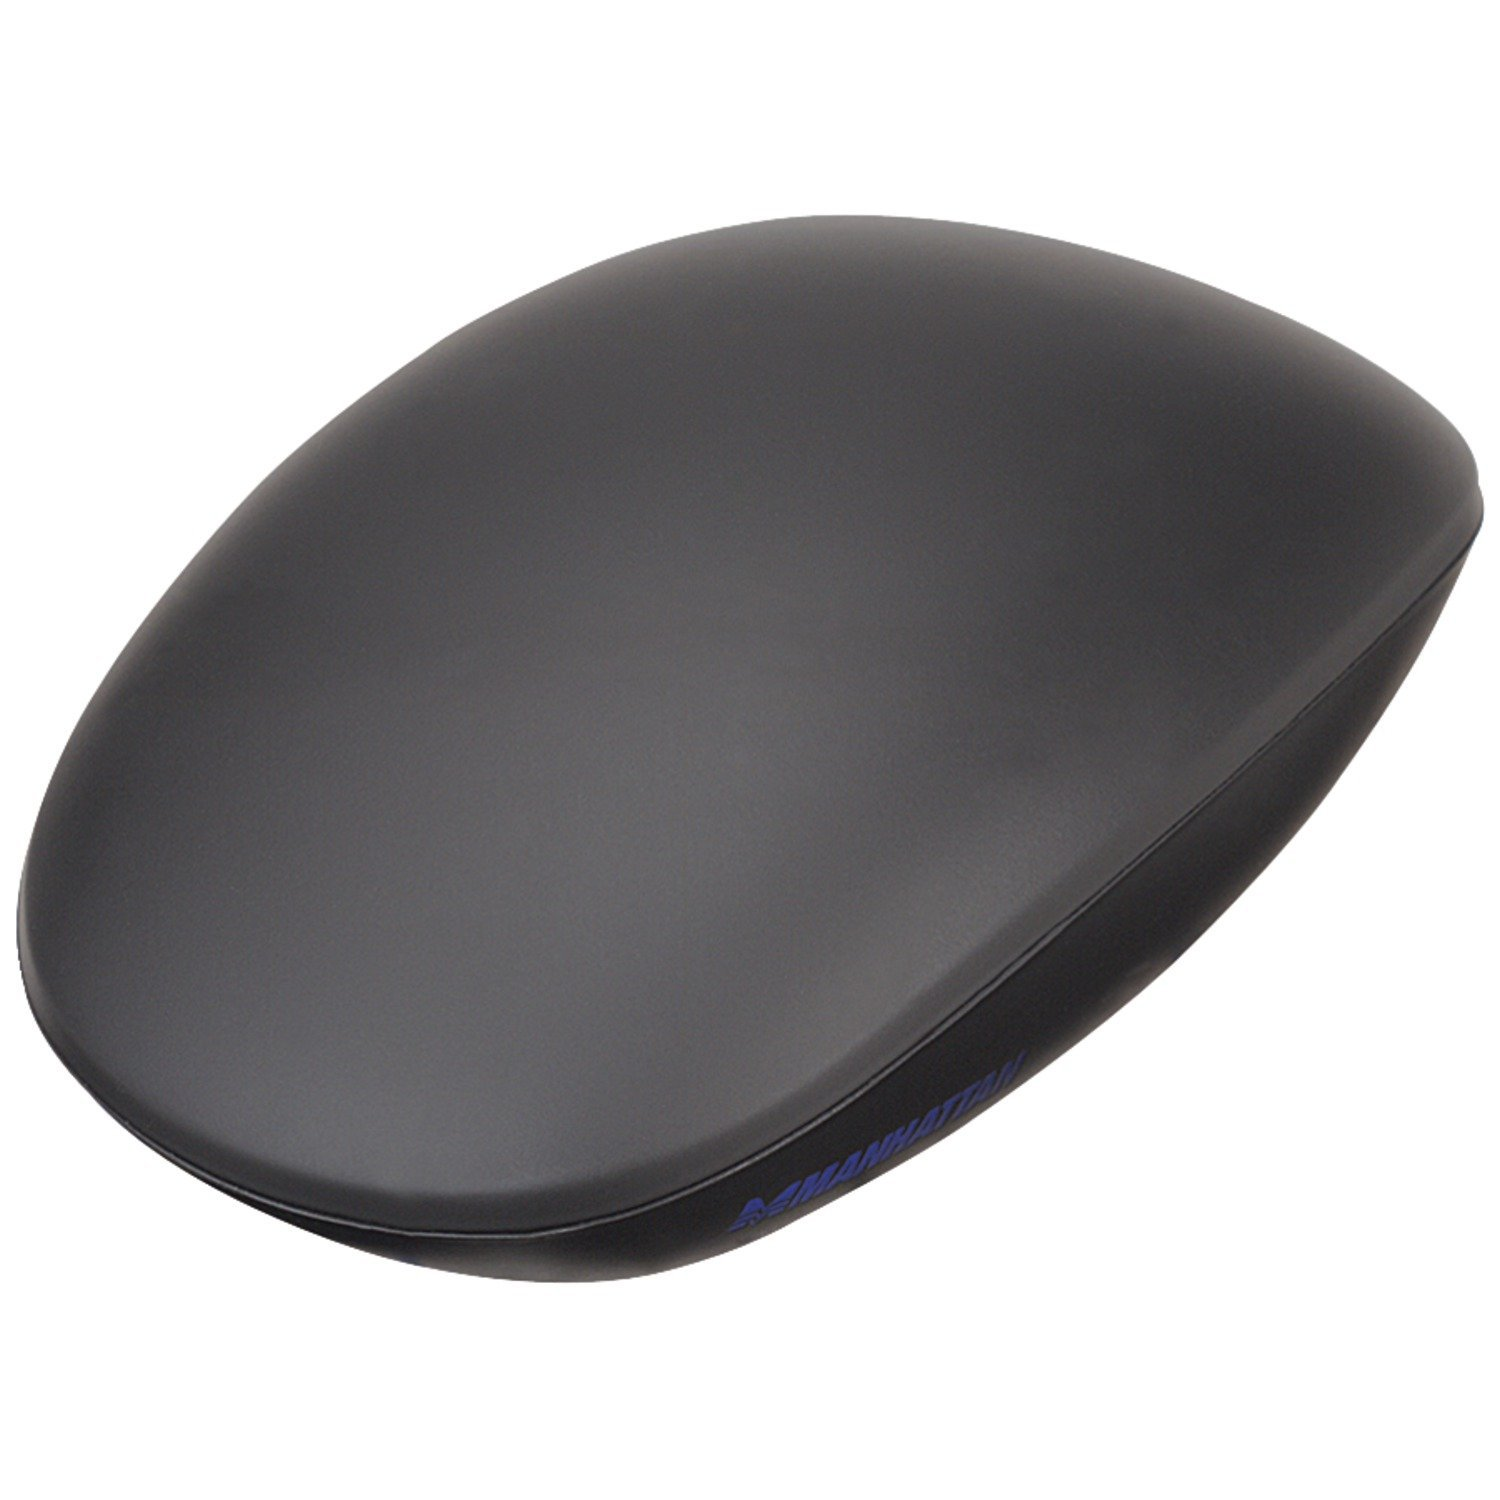 02c2980f461 Get Quotations · Manhattan Linu Stealth Touch Mouse for Windows XP/Vista/7  and Mac OS 9